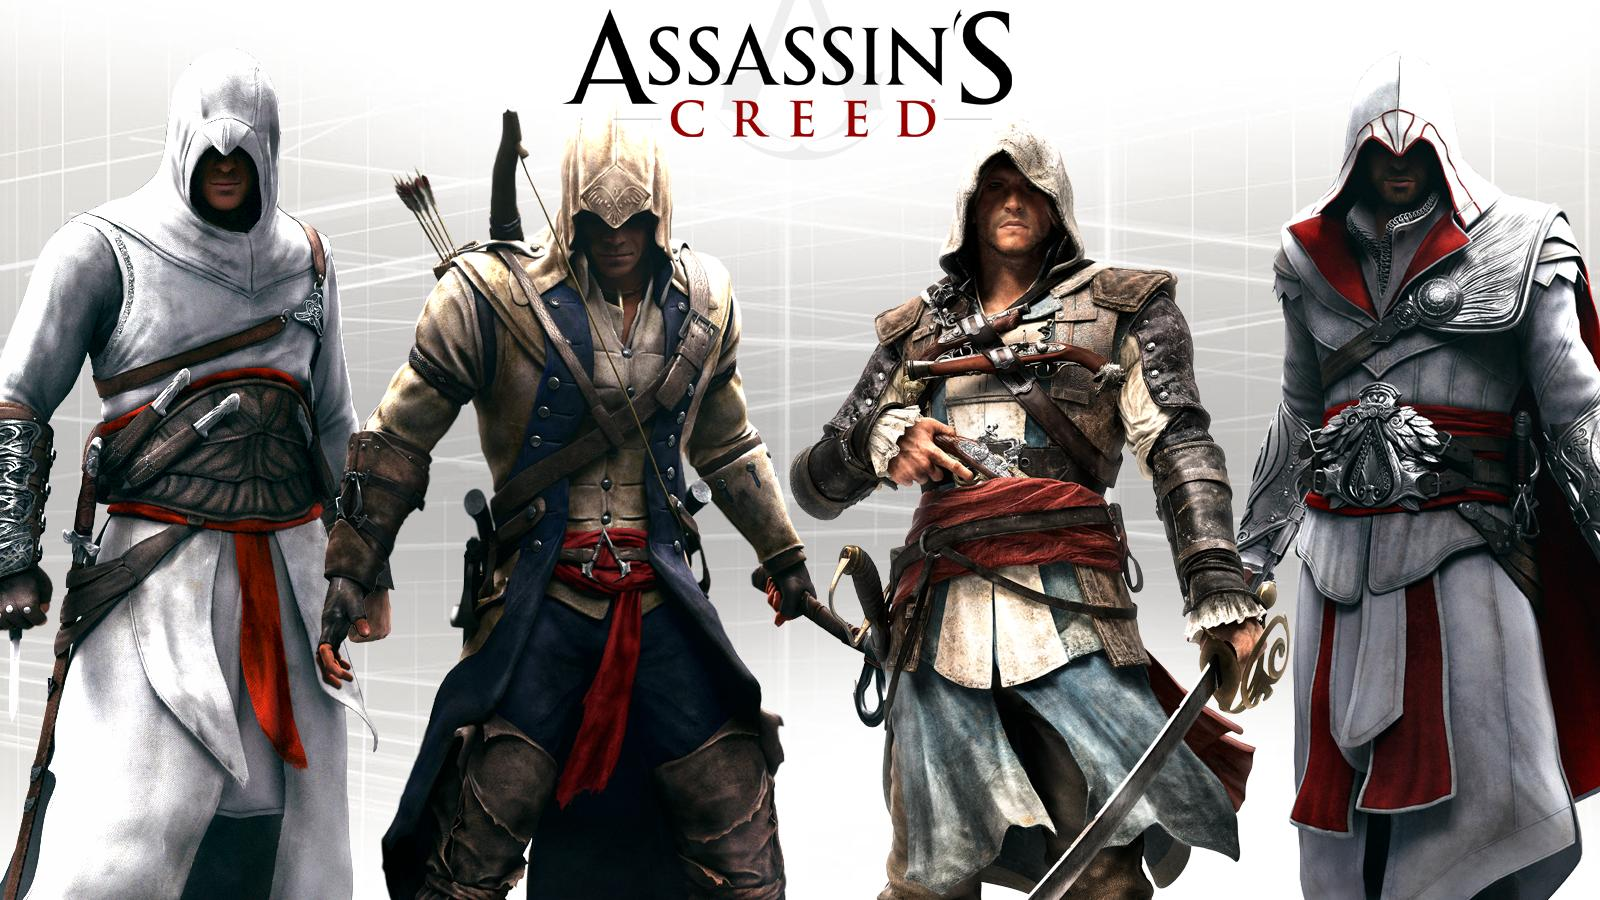 Ranking The Assassin S Creed Games From Worst To Best Load The Game